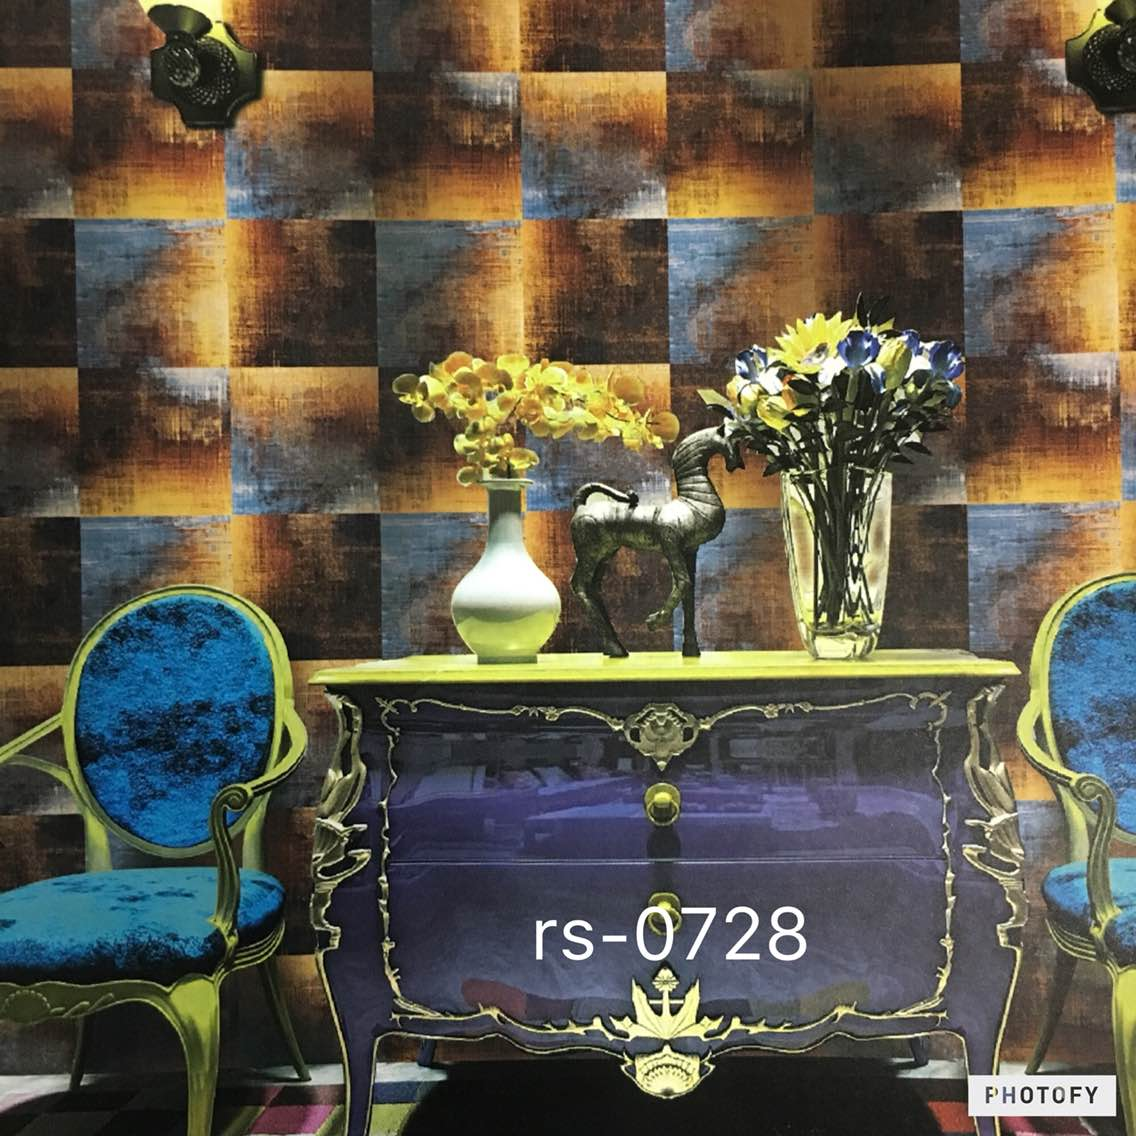 Best Imported Wallpaper supplier in Delhi.   Retro Imported wallpaper supplier in Delhi.  A unique & colorful wallpaper for your Spa &  Restaurant walls. A high class Design for rooms.   To buy call us-  Wallparadise- Retro Imported wallpaper supplier in pitampura delhi.